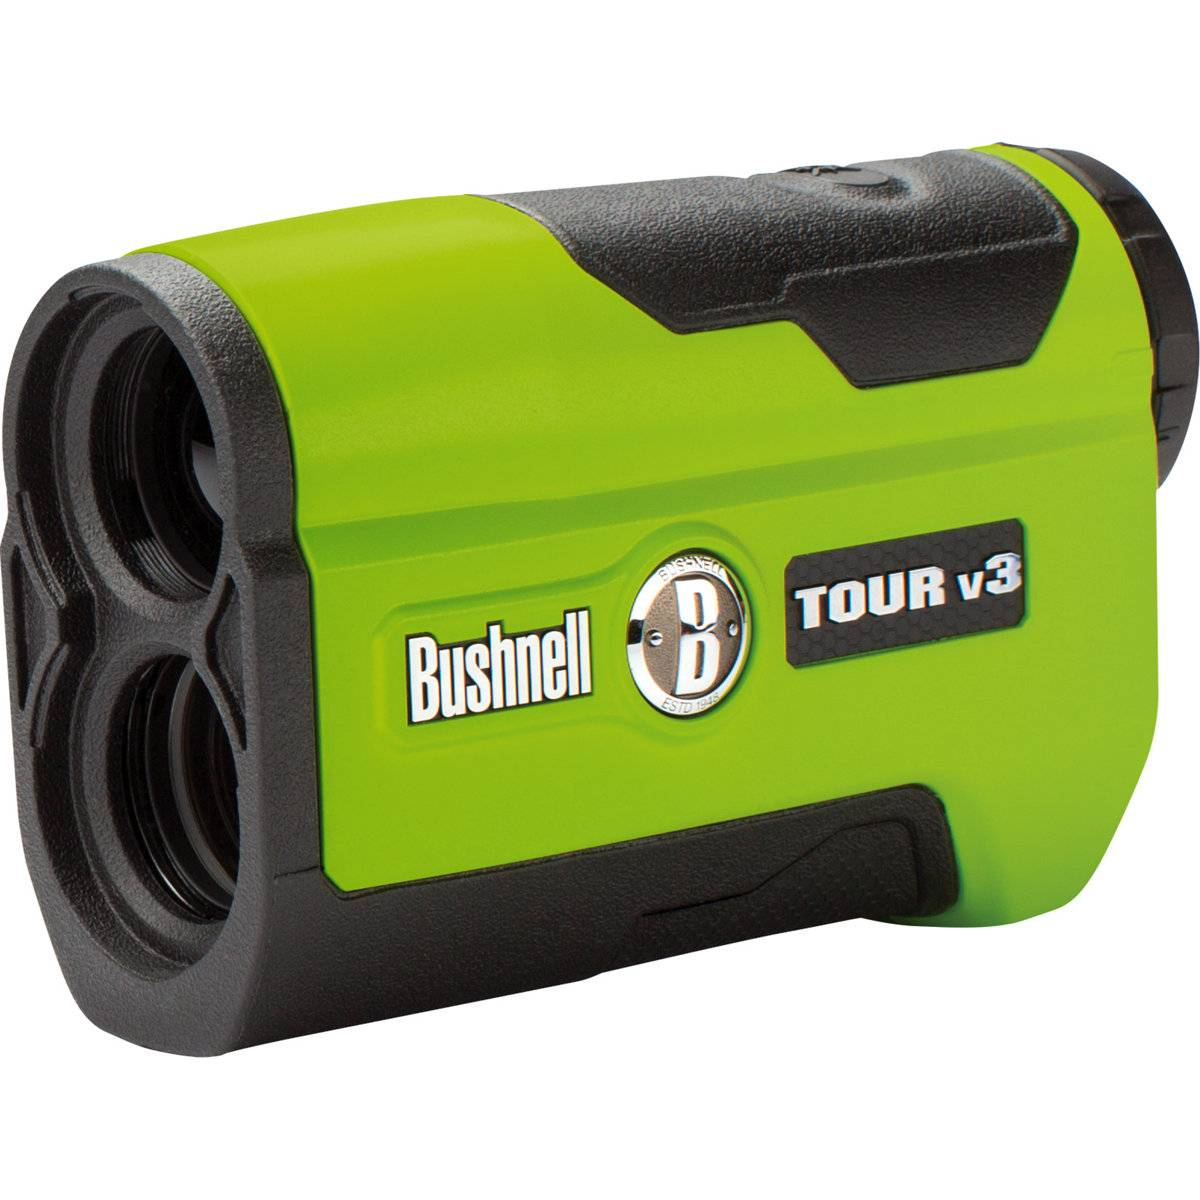 Bushnell Tour v3 Rangefinder - Exclusive